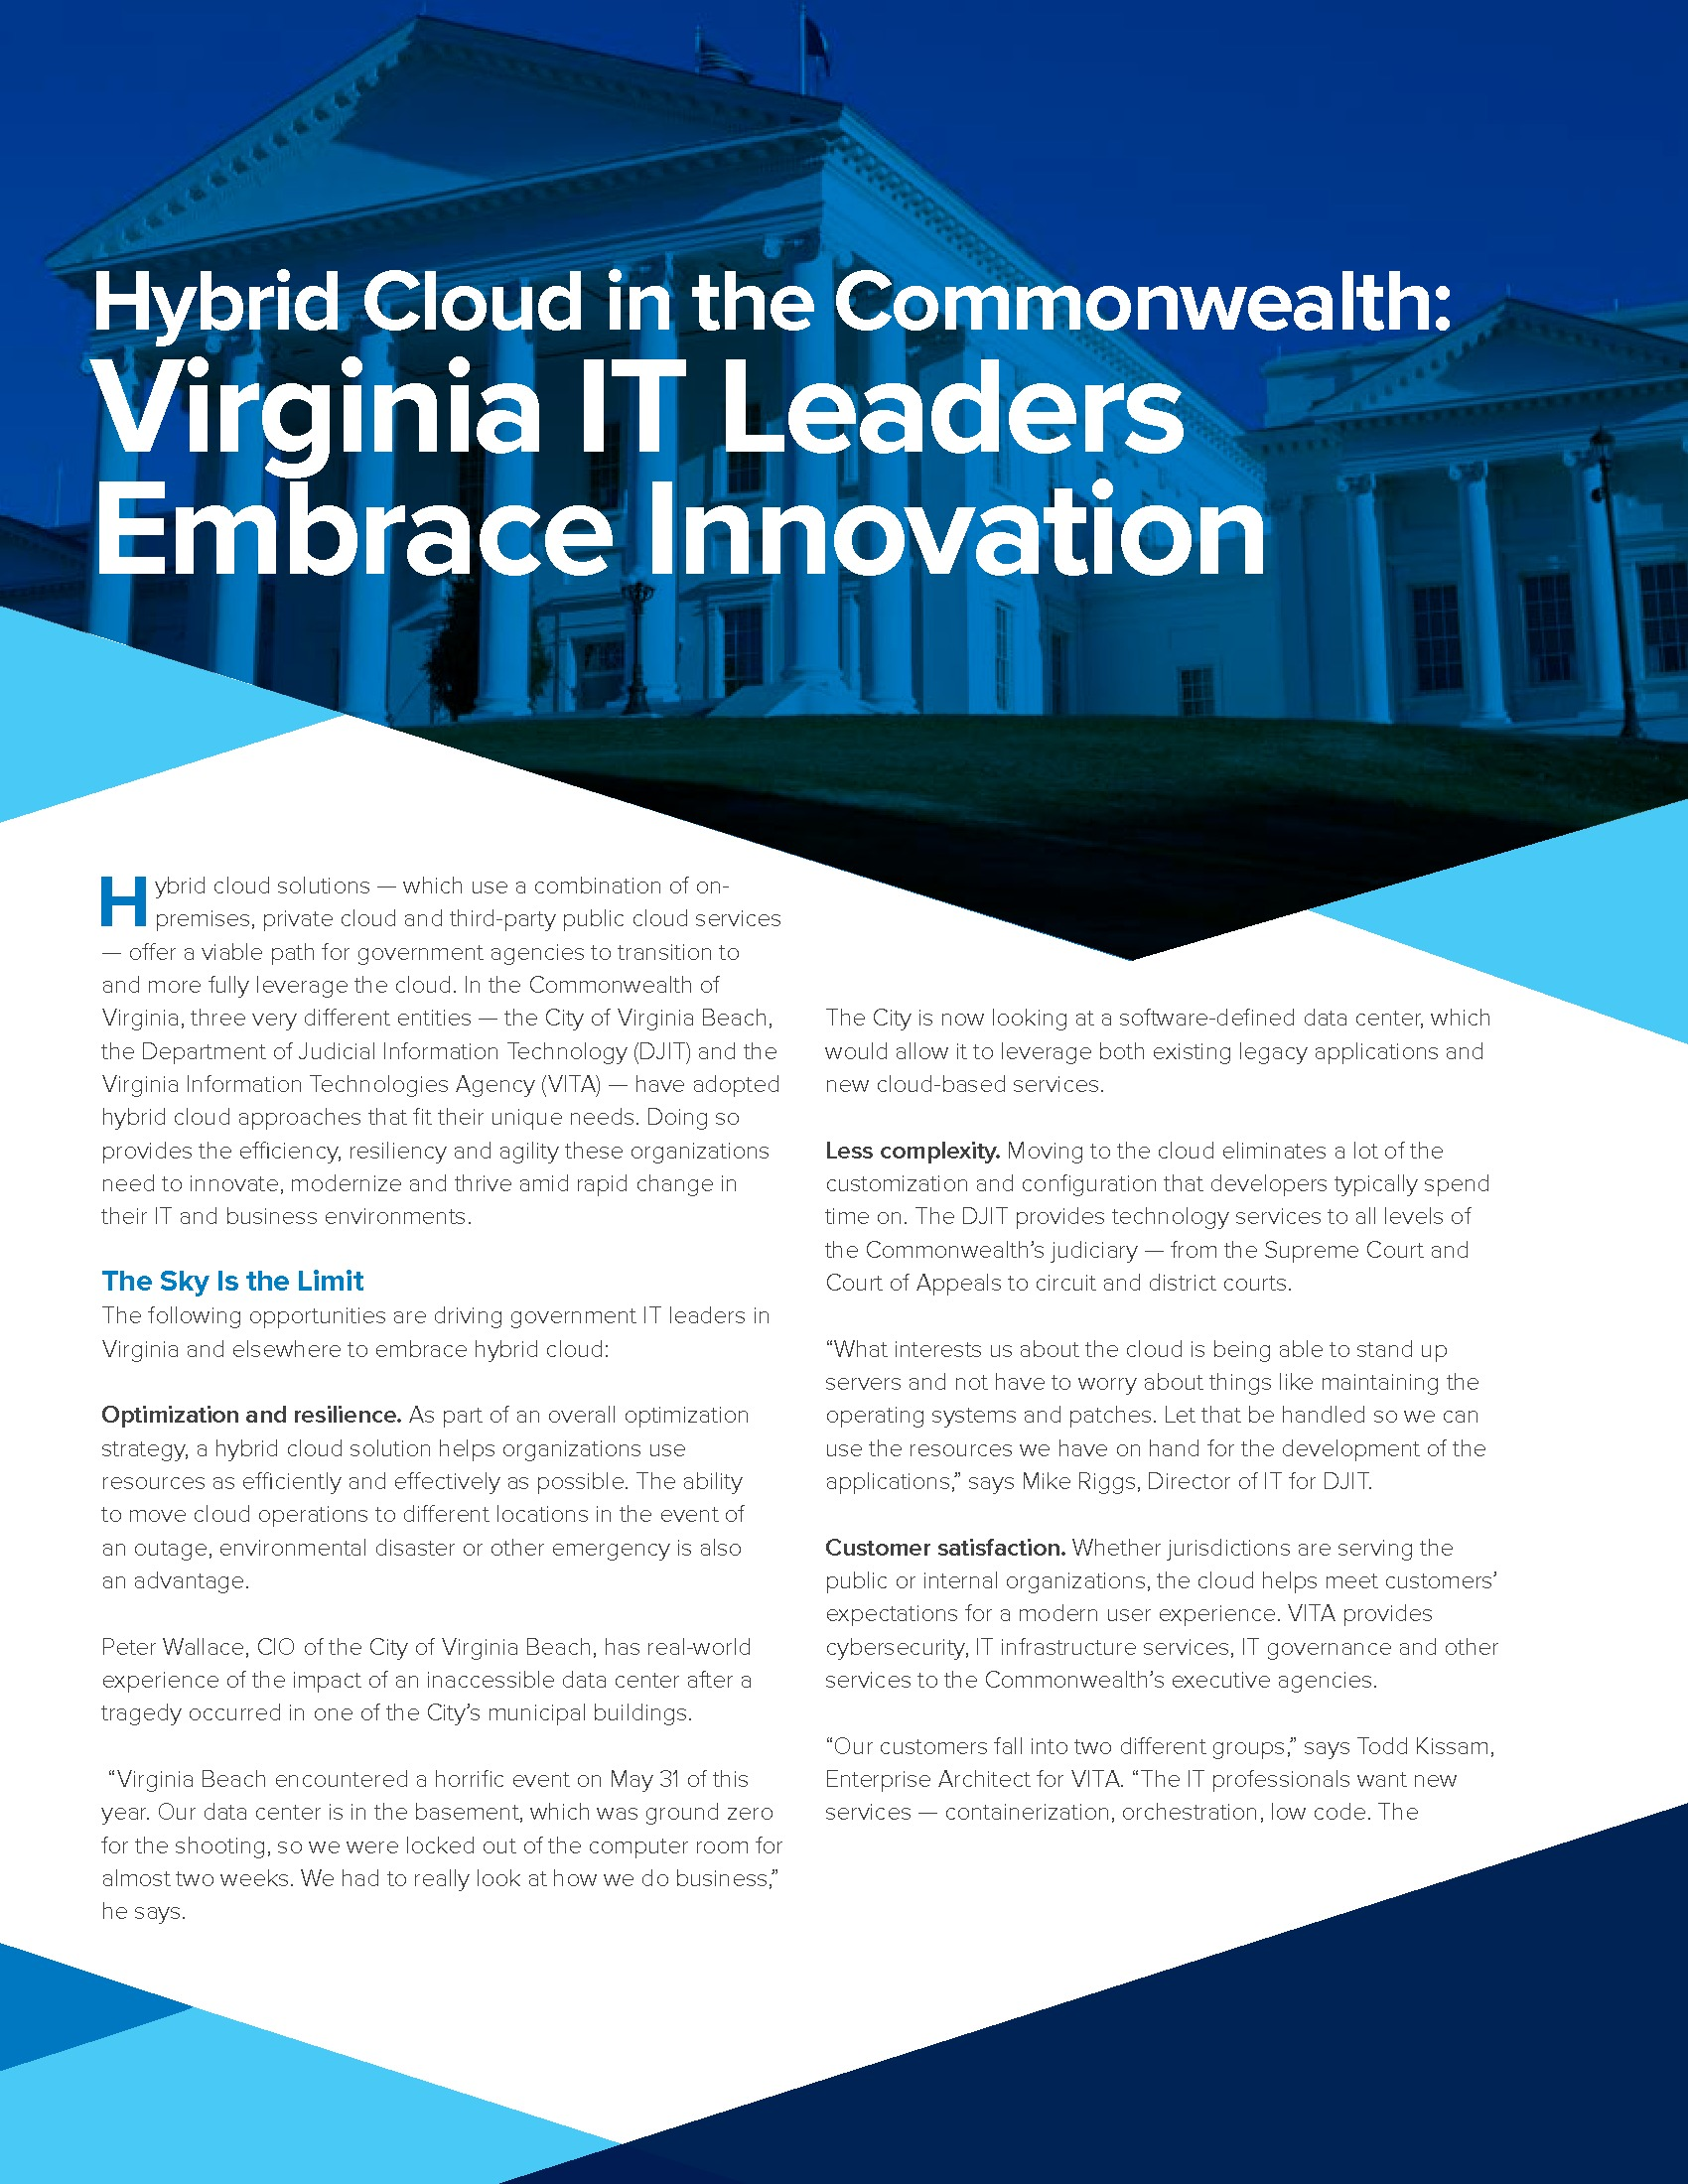 Paper: Hybrid Cloud in the Commonwealth: Virginia IT Leaders Embrace Innovation